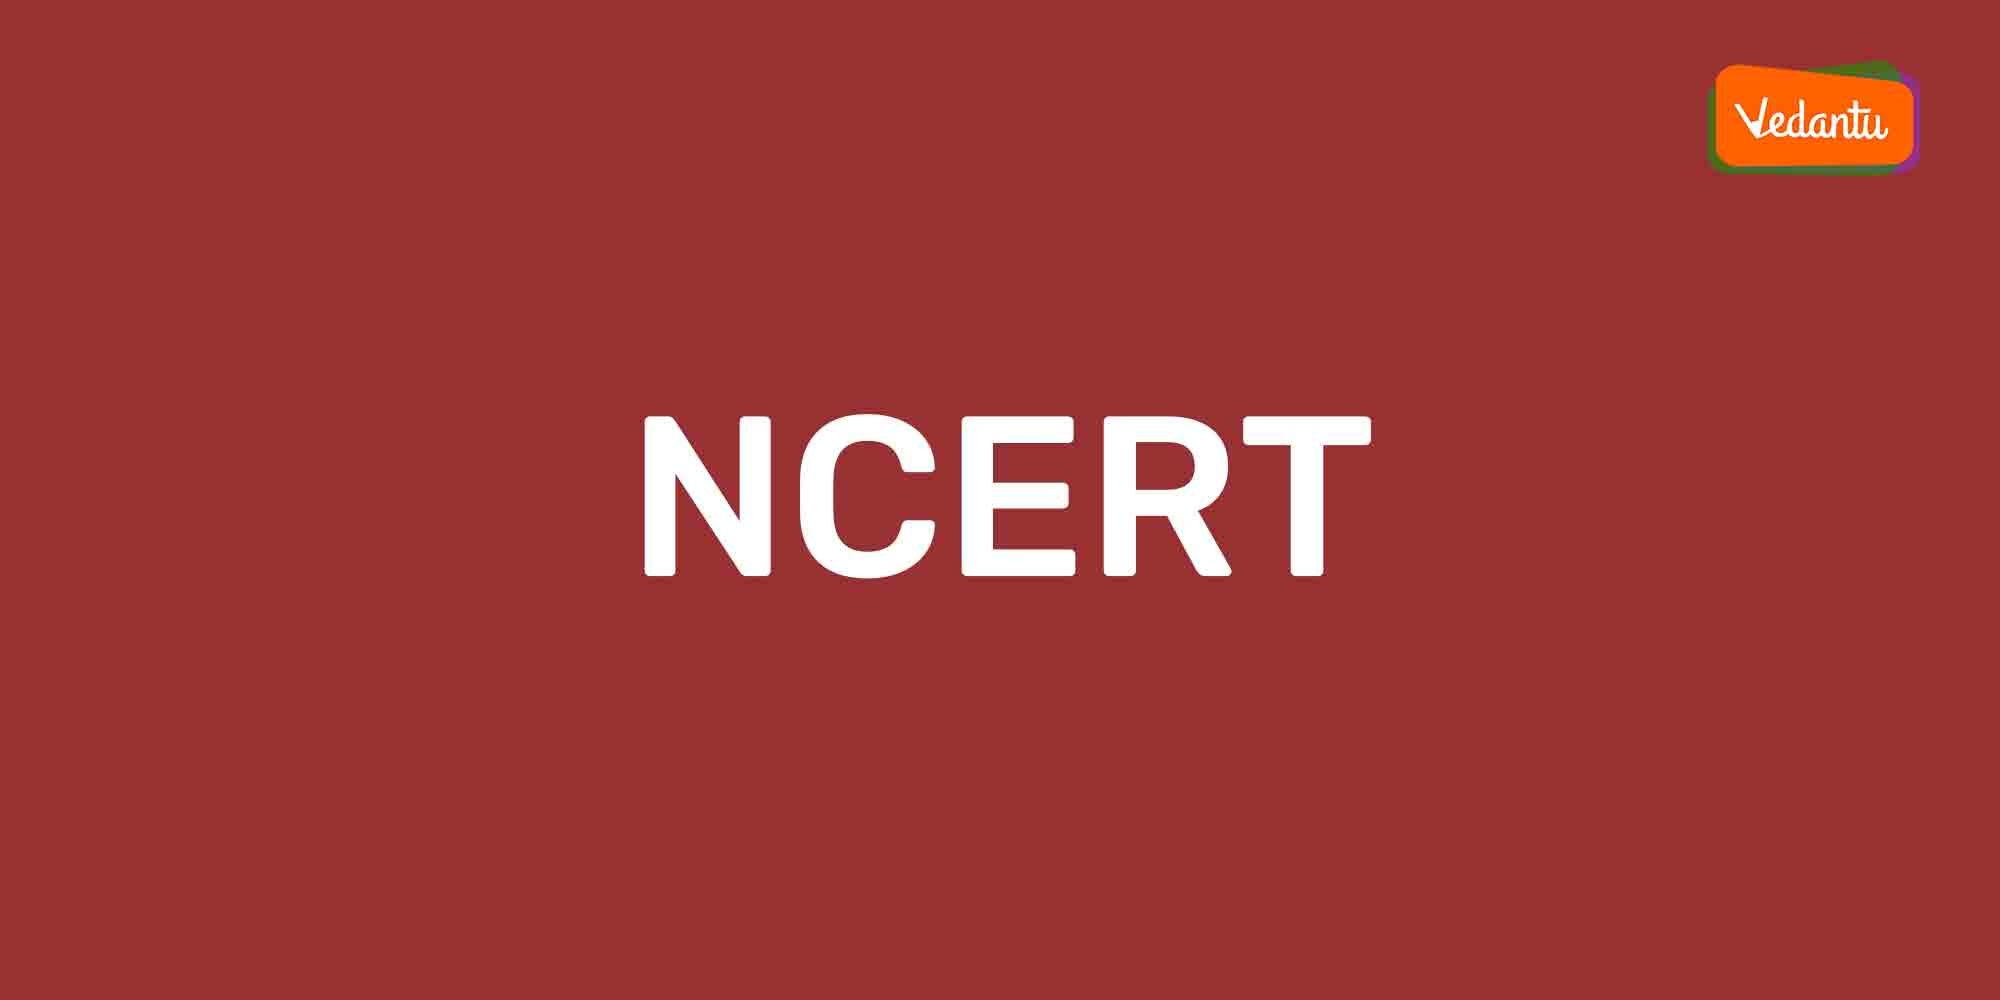 What is Better: Buying NCERT Textbooks or Using Online Books